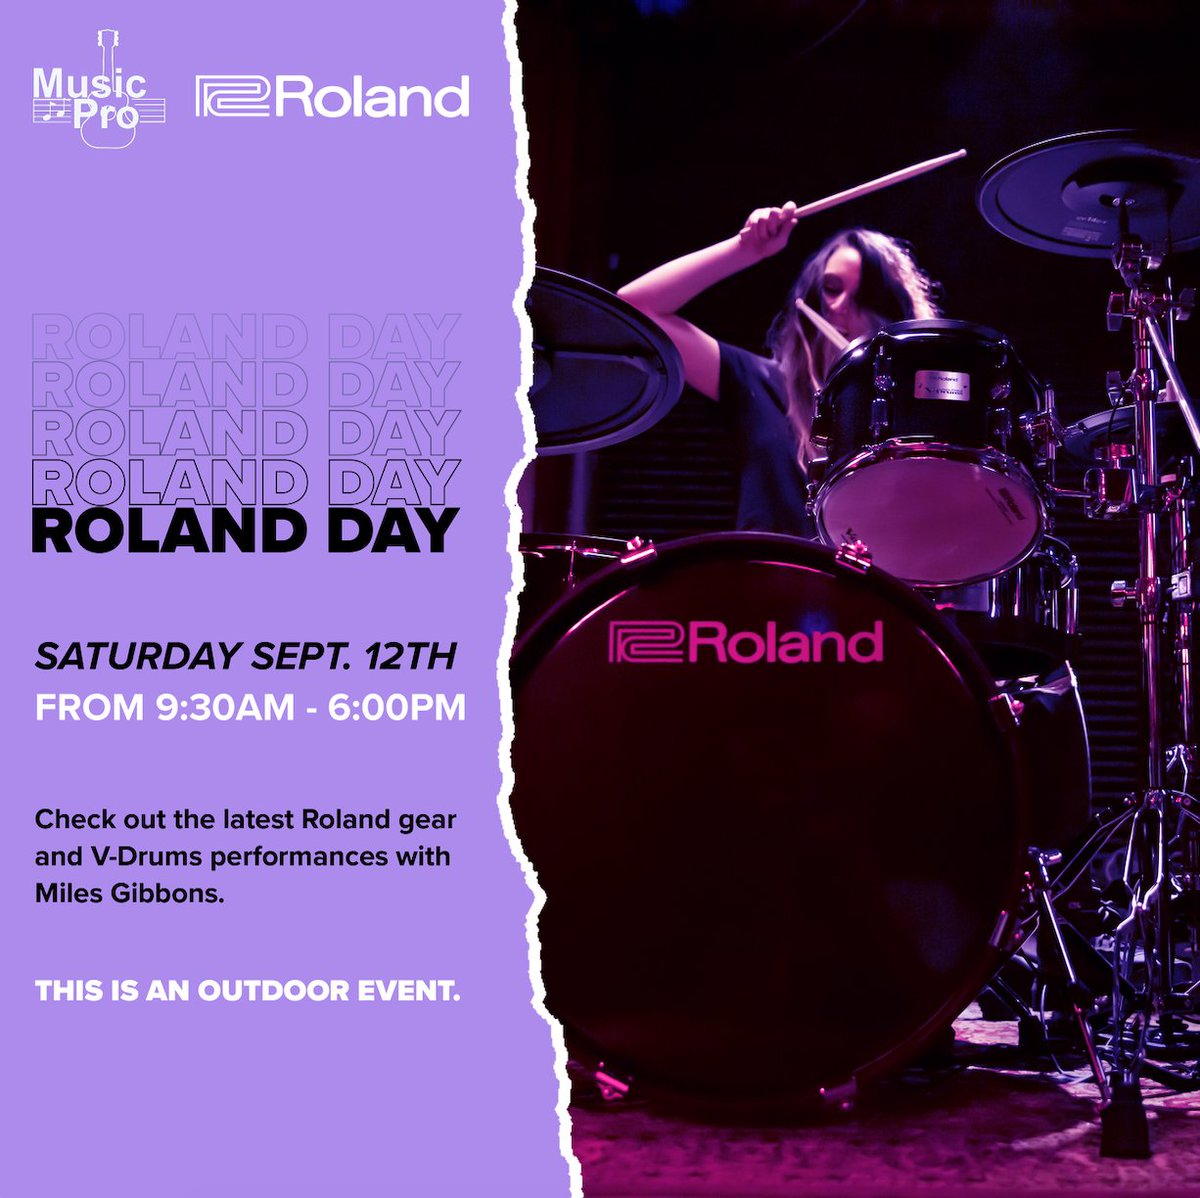 It's COMING!  Join us at Music Pro on SATURDAY, SEP 12TH for OUTDOOR Roland Day. There will be special V-Drum performances with Miles Gibbons and Roland specialist Matt Dunn will be giving product demos throughout the day.  For more info: https://t.co/3Orw06PwTn https://t.co/RpNX6HDm6H